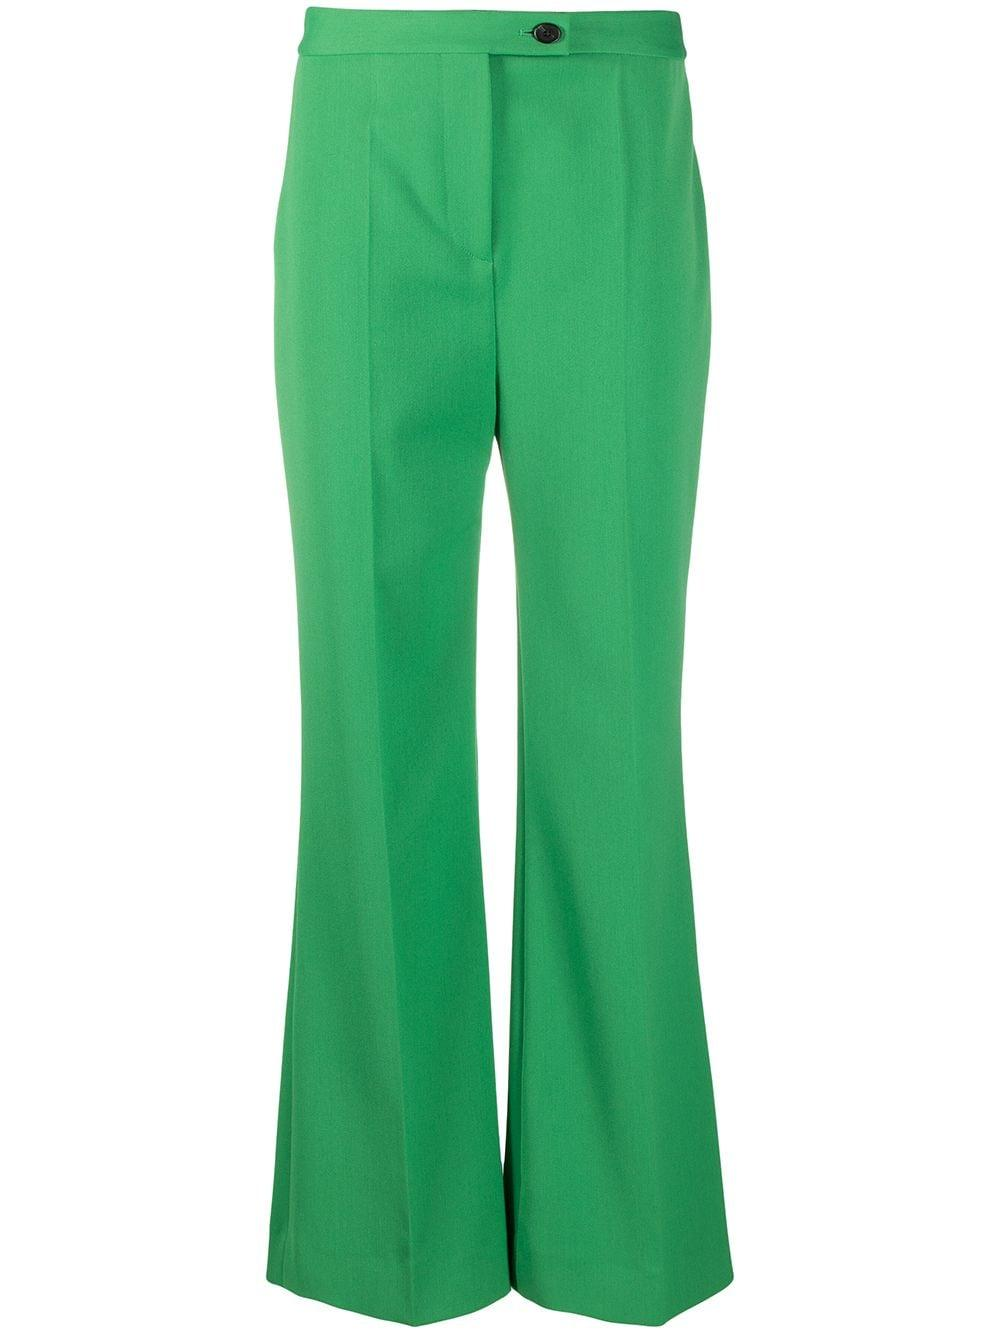 Cropped Bell Bottom Item # 2121WTR002202A